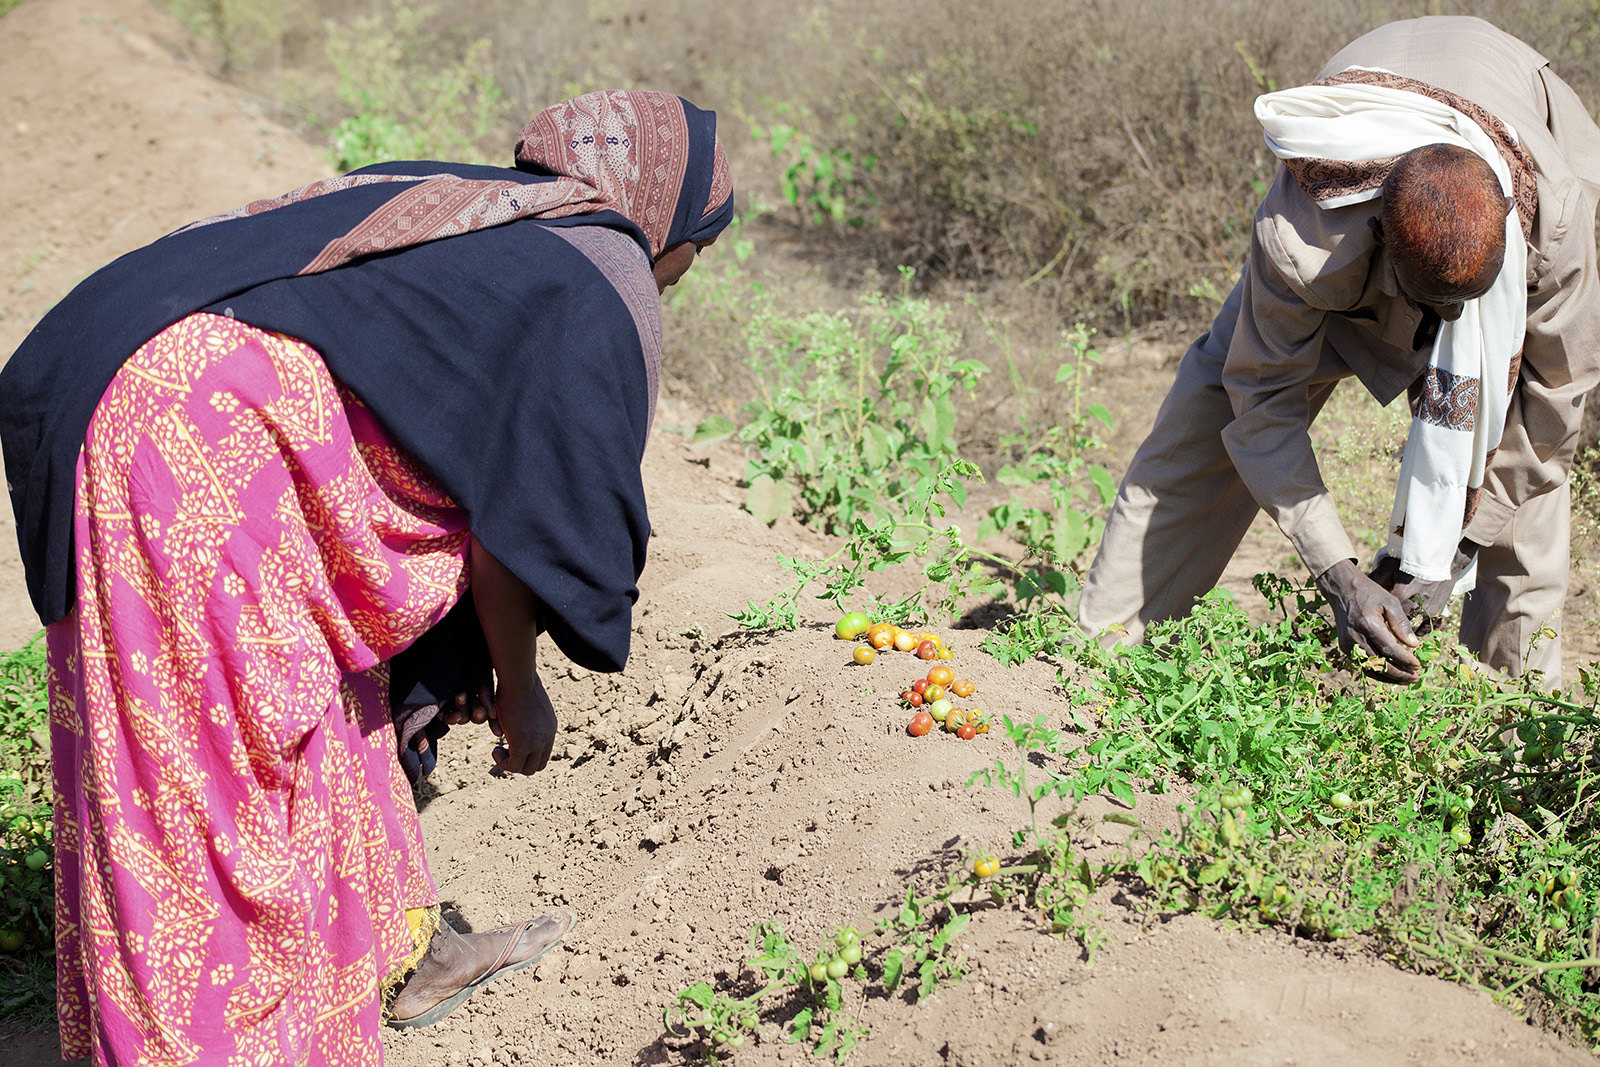 Addressing acute food insecurity in rural areas 2 - Somalia